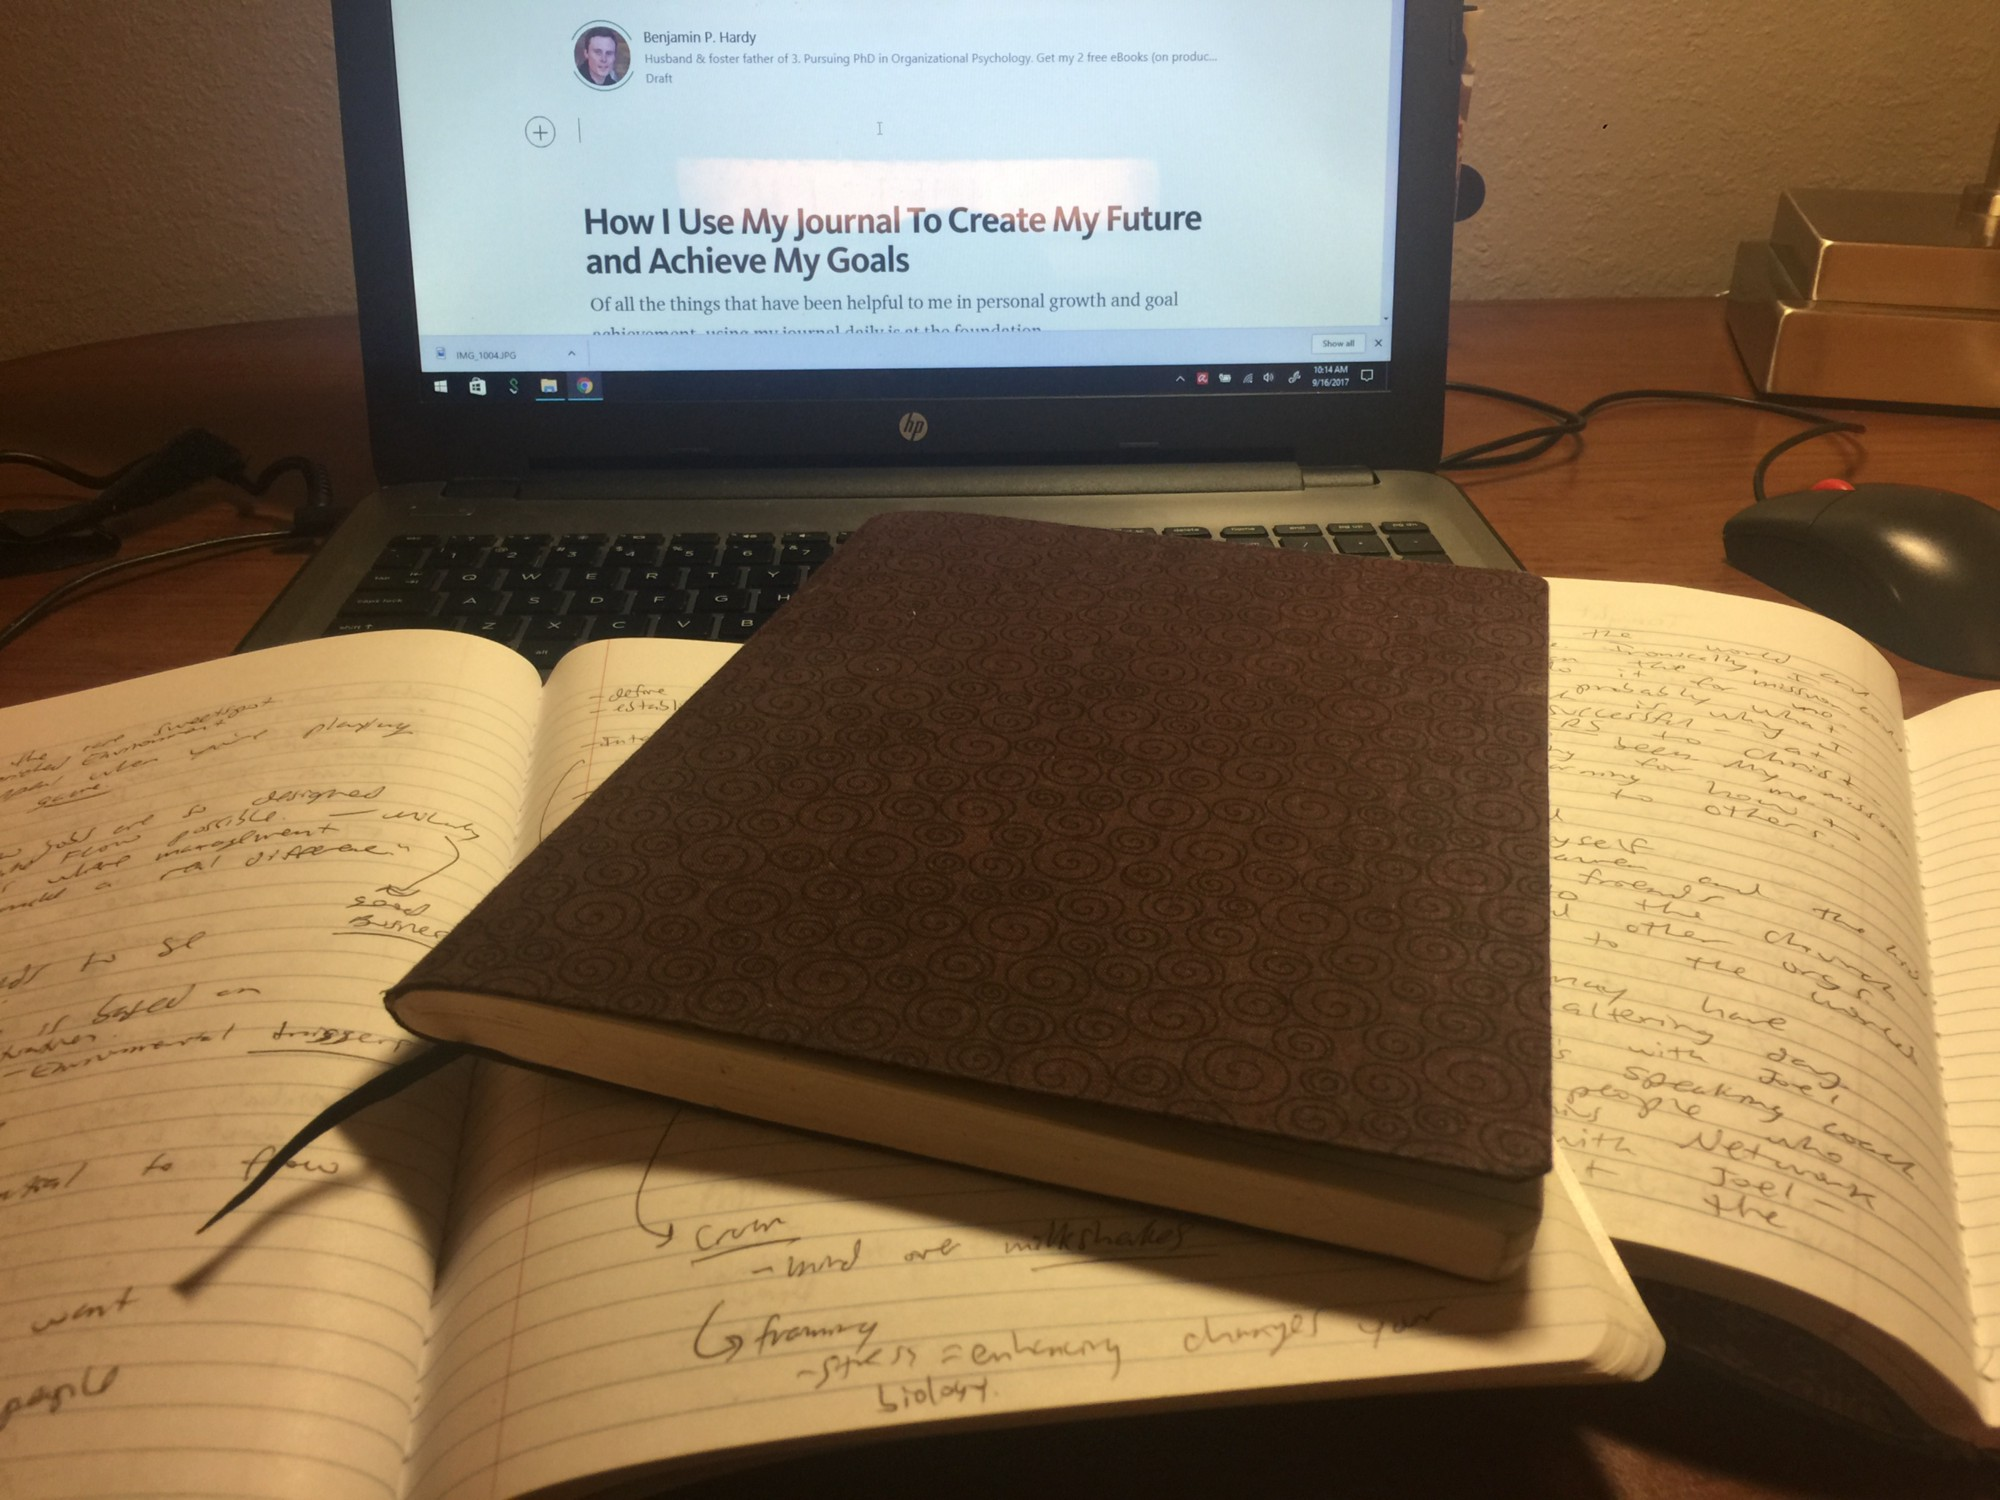 How I Use My Journal To Create My Future And Achieve My Goals